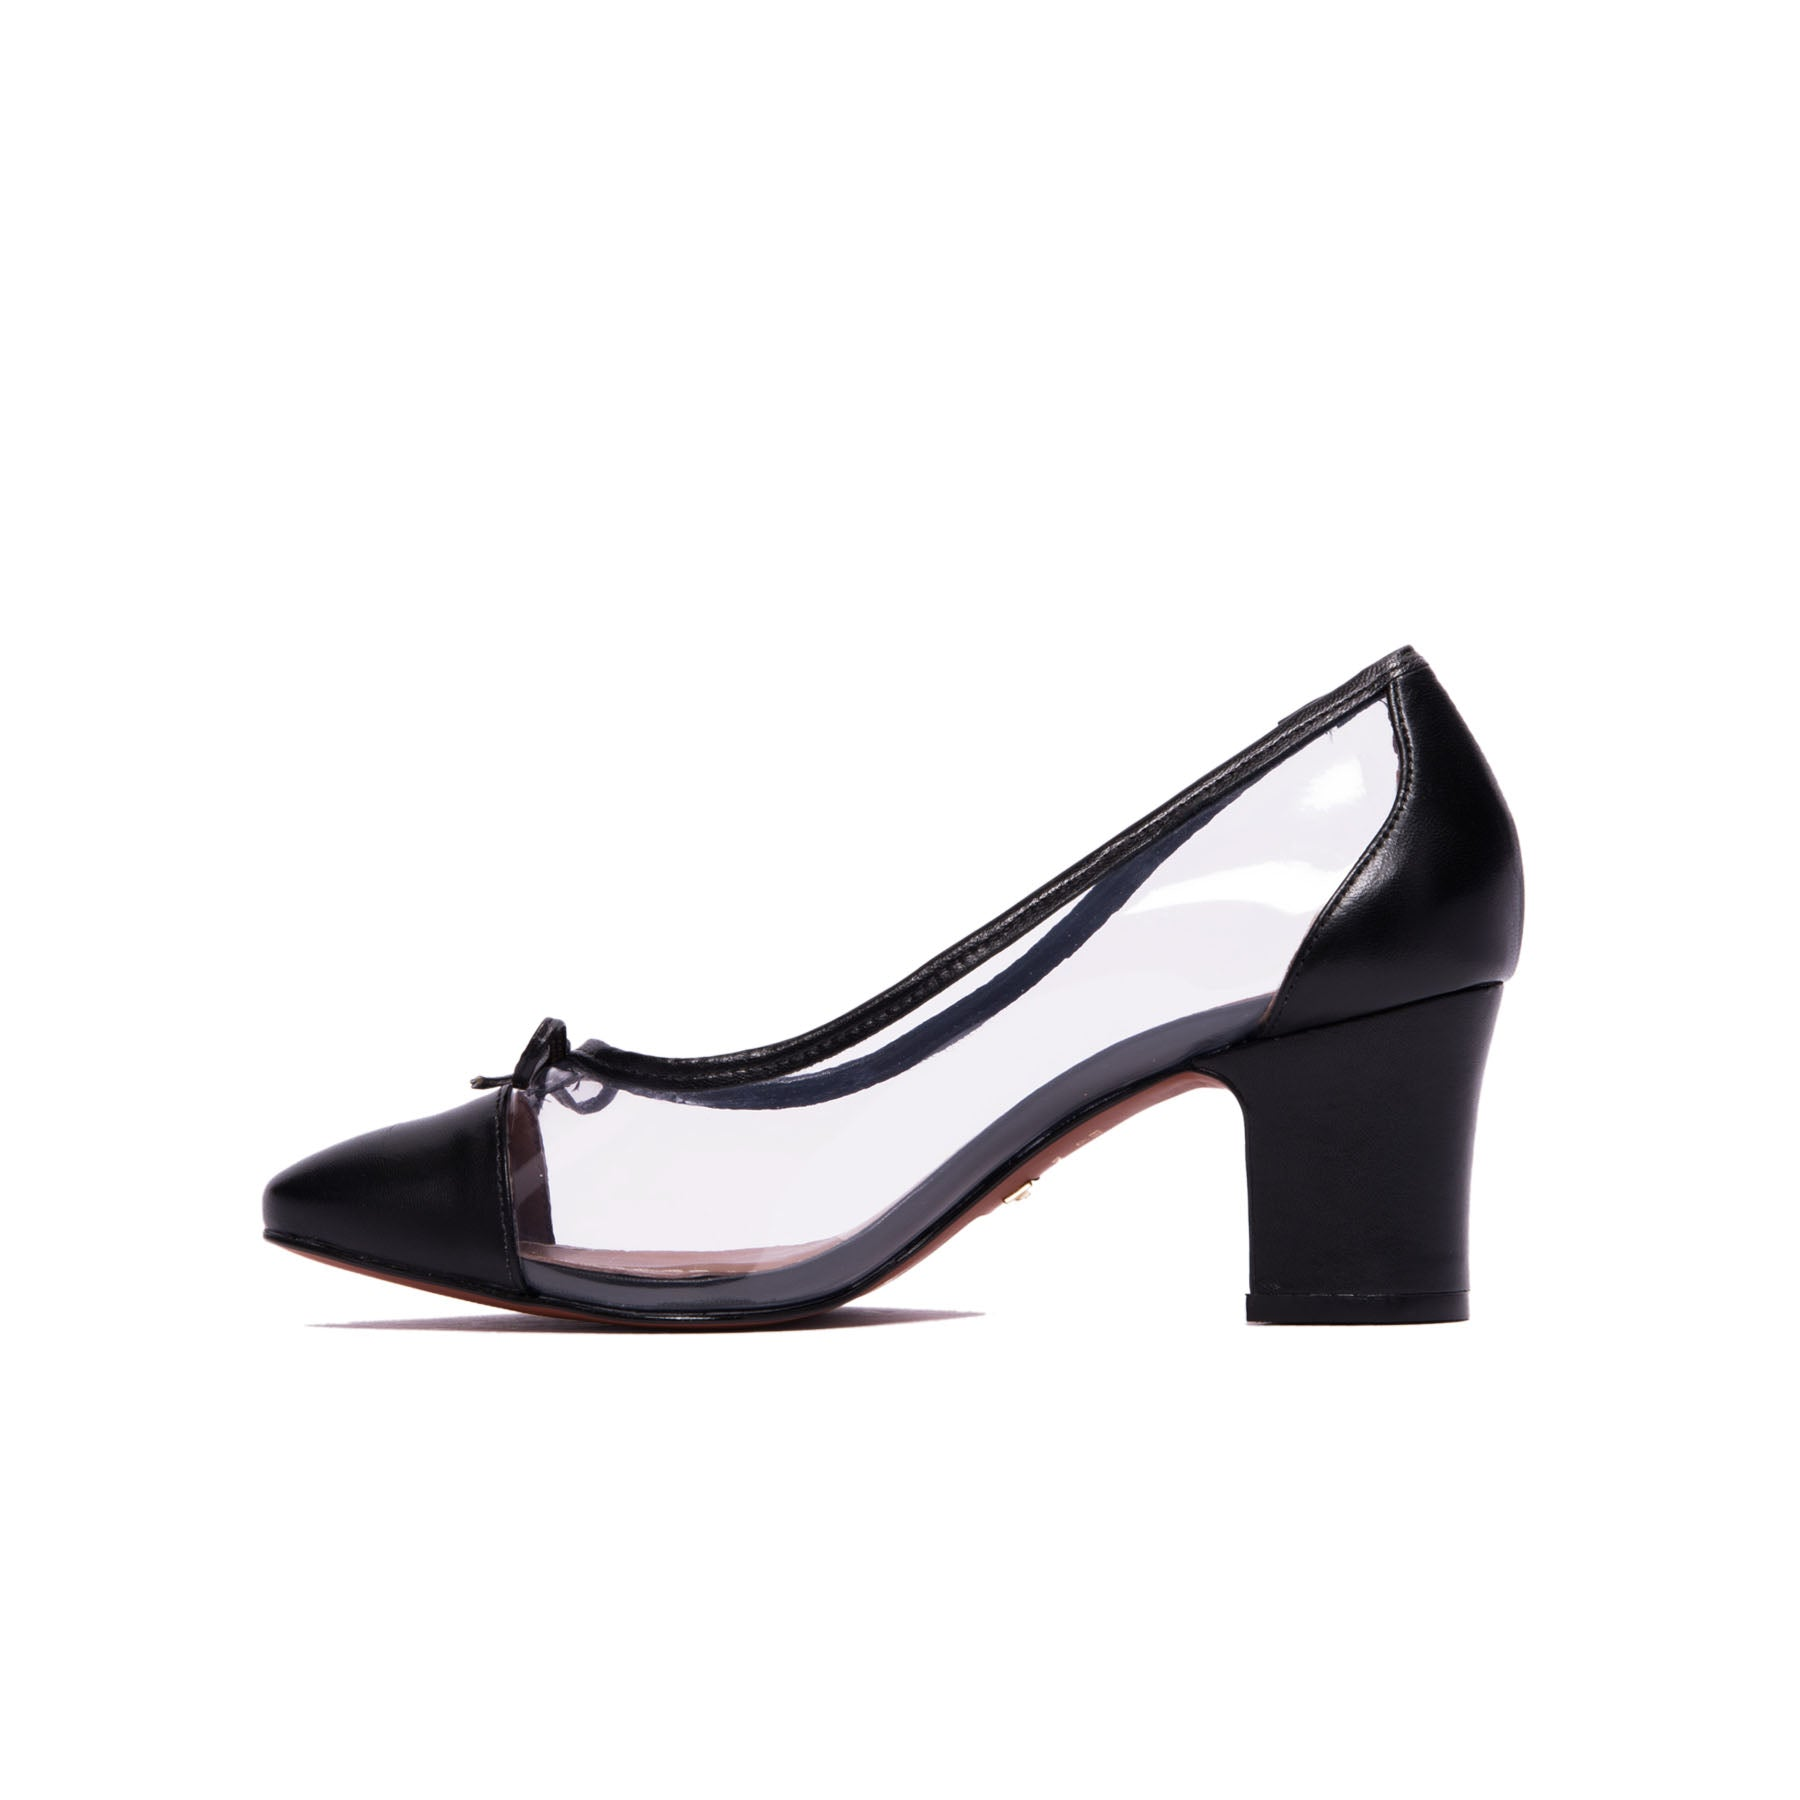 Reinita Black Clear Pumps